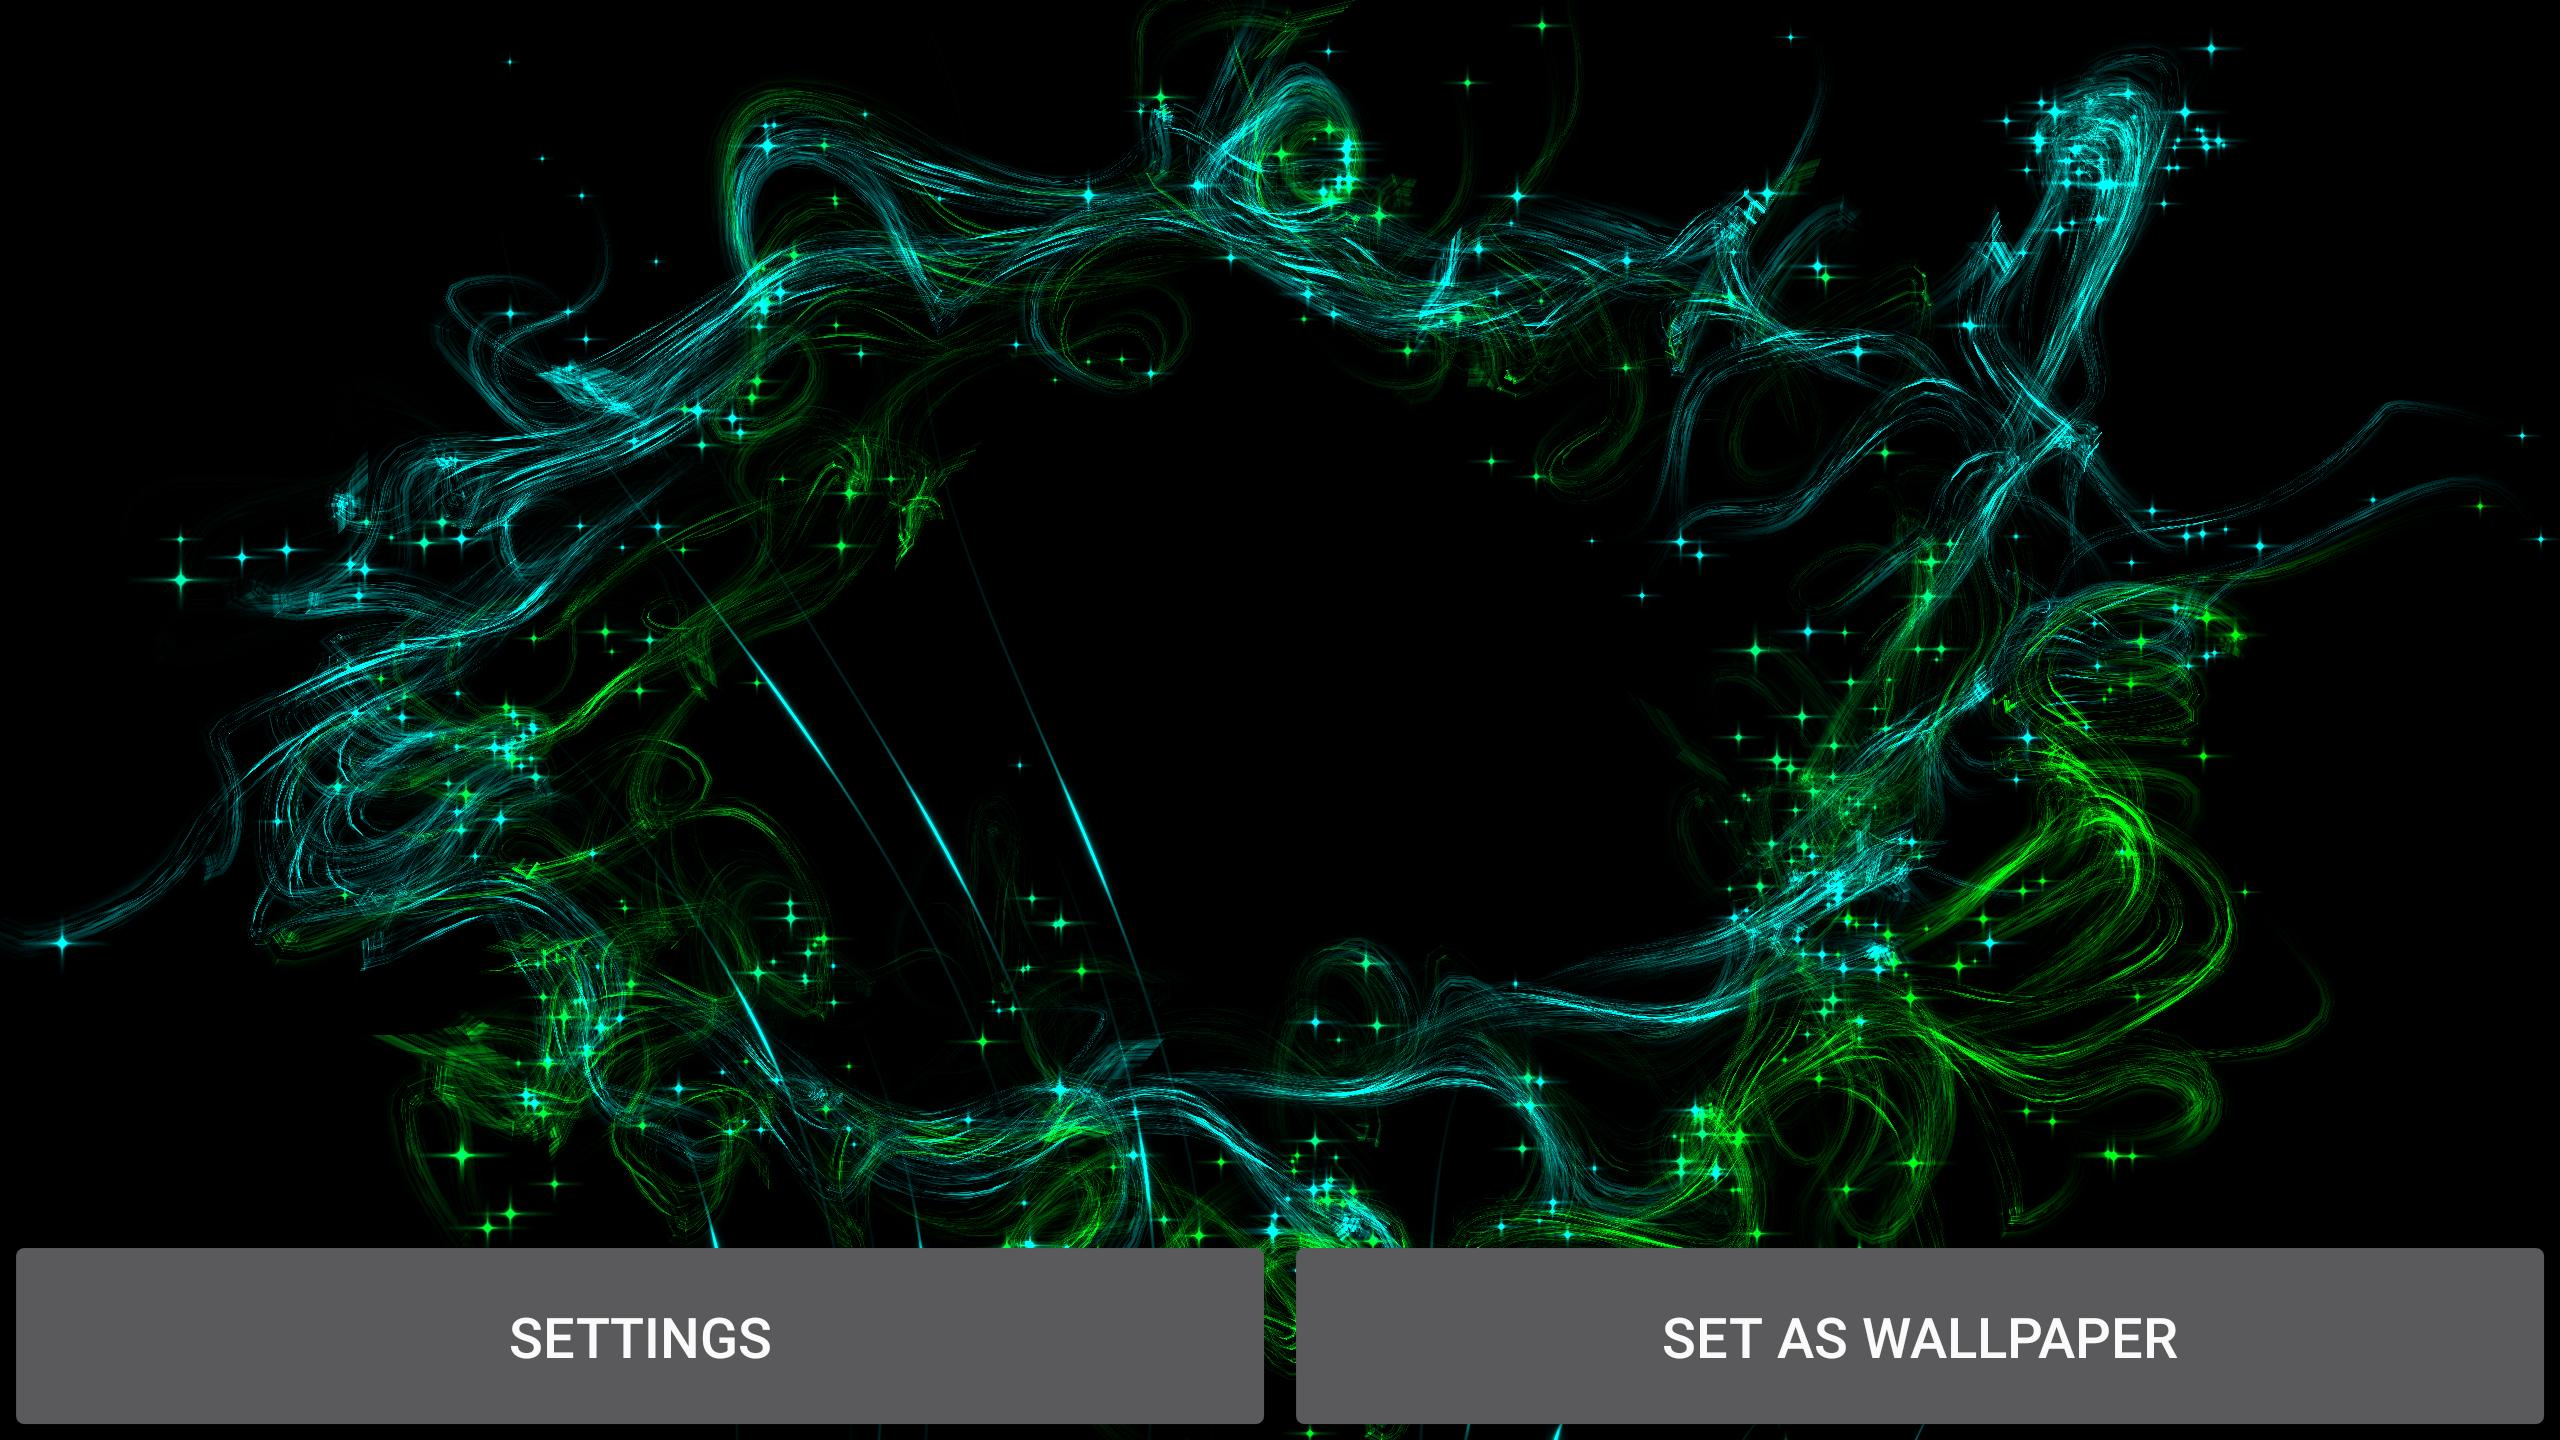 Magic Particles Live Wallpaper For Android Apk Download